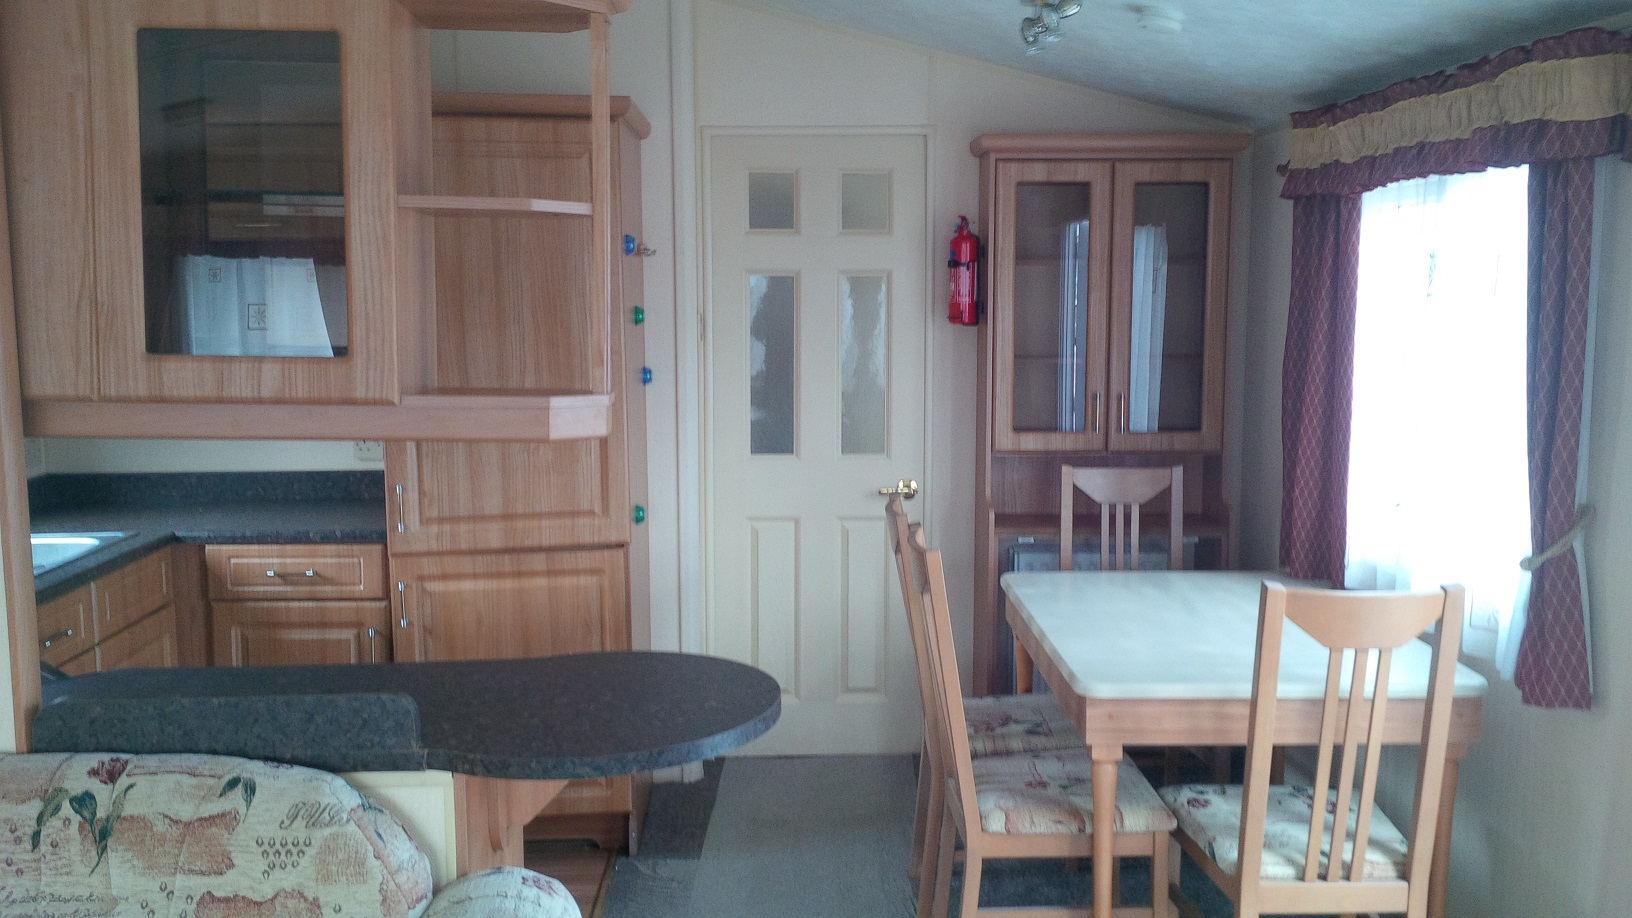 Willerby Granada: Static Caravans for Temporary Accommodation, Langley Moor, Durham Large Image 2